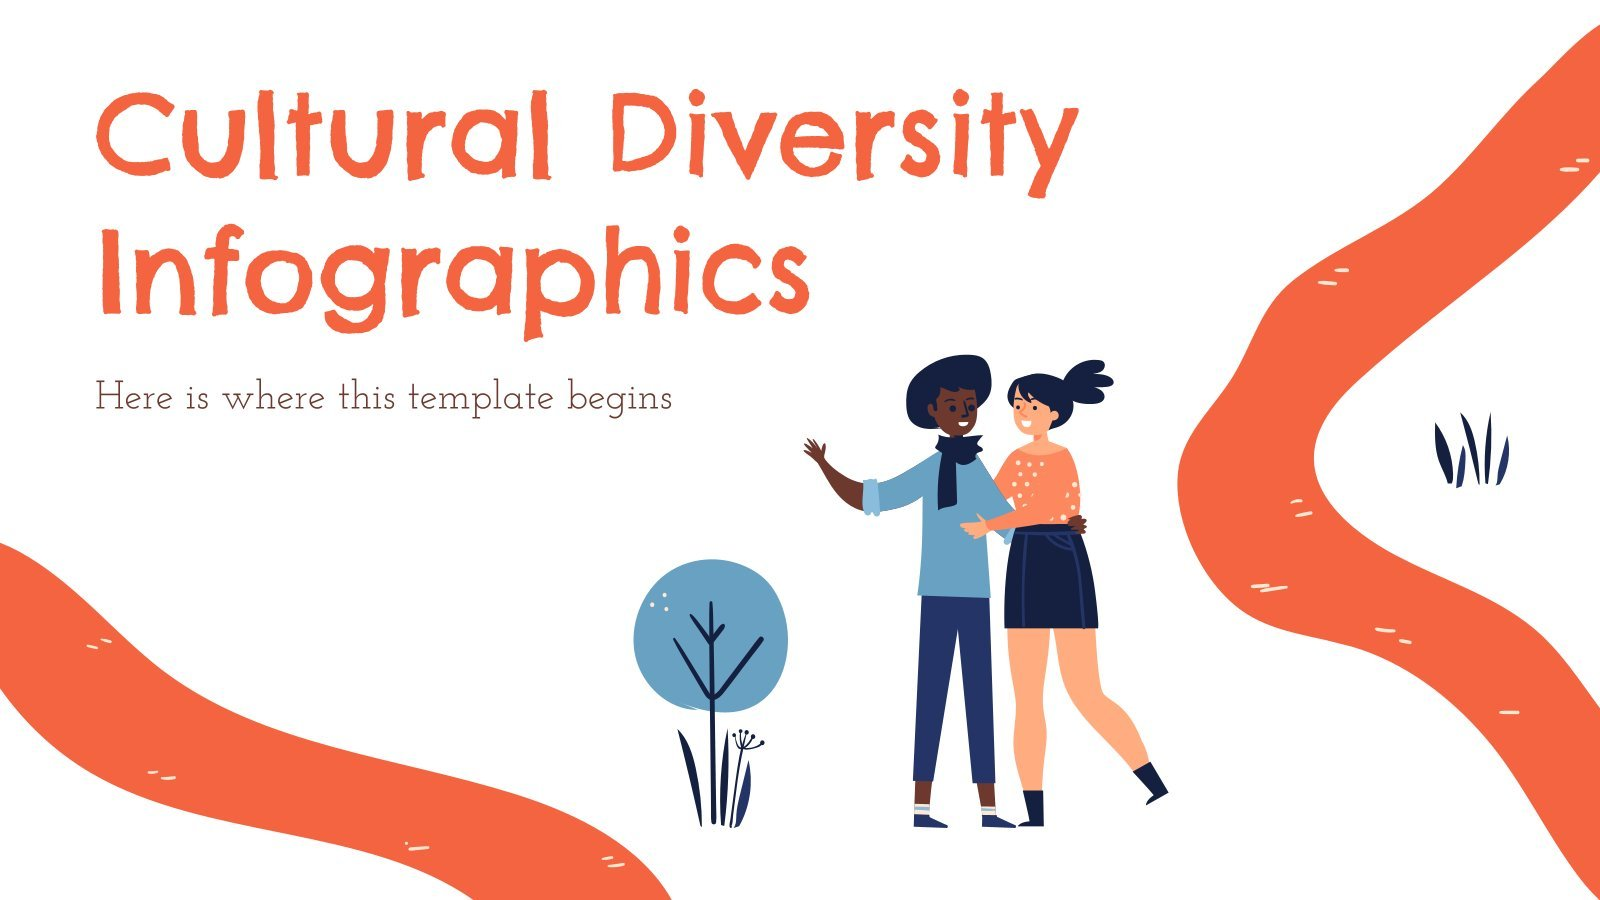 Cultural Diversity Infographics presentation template